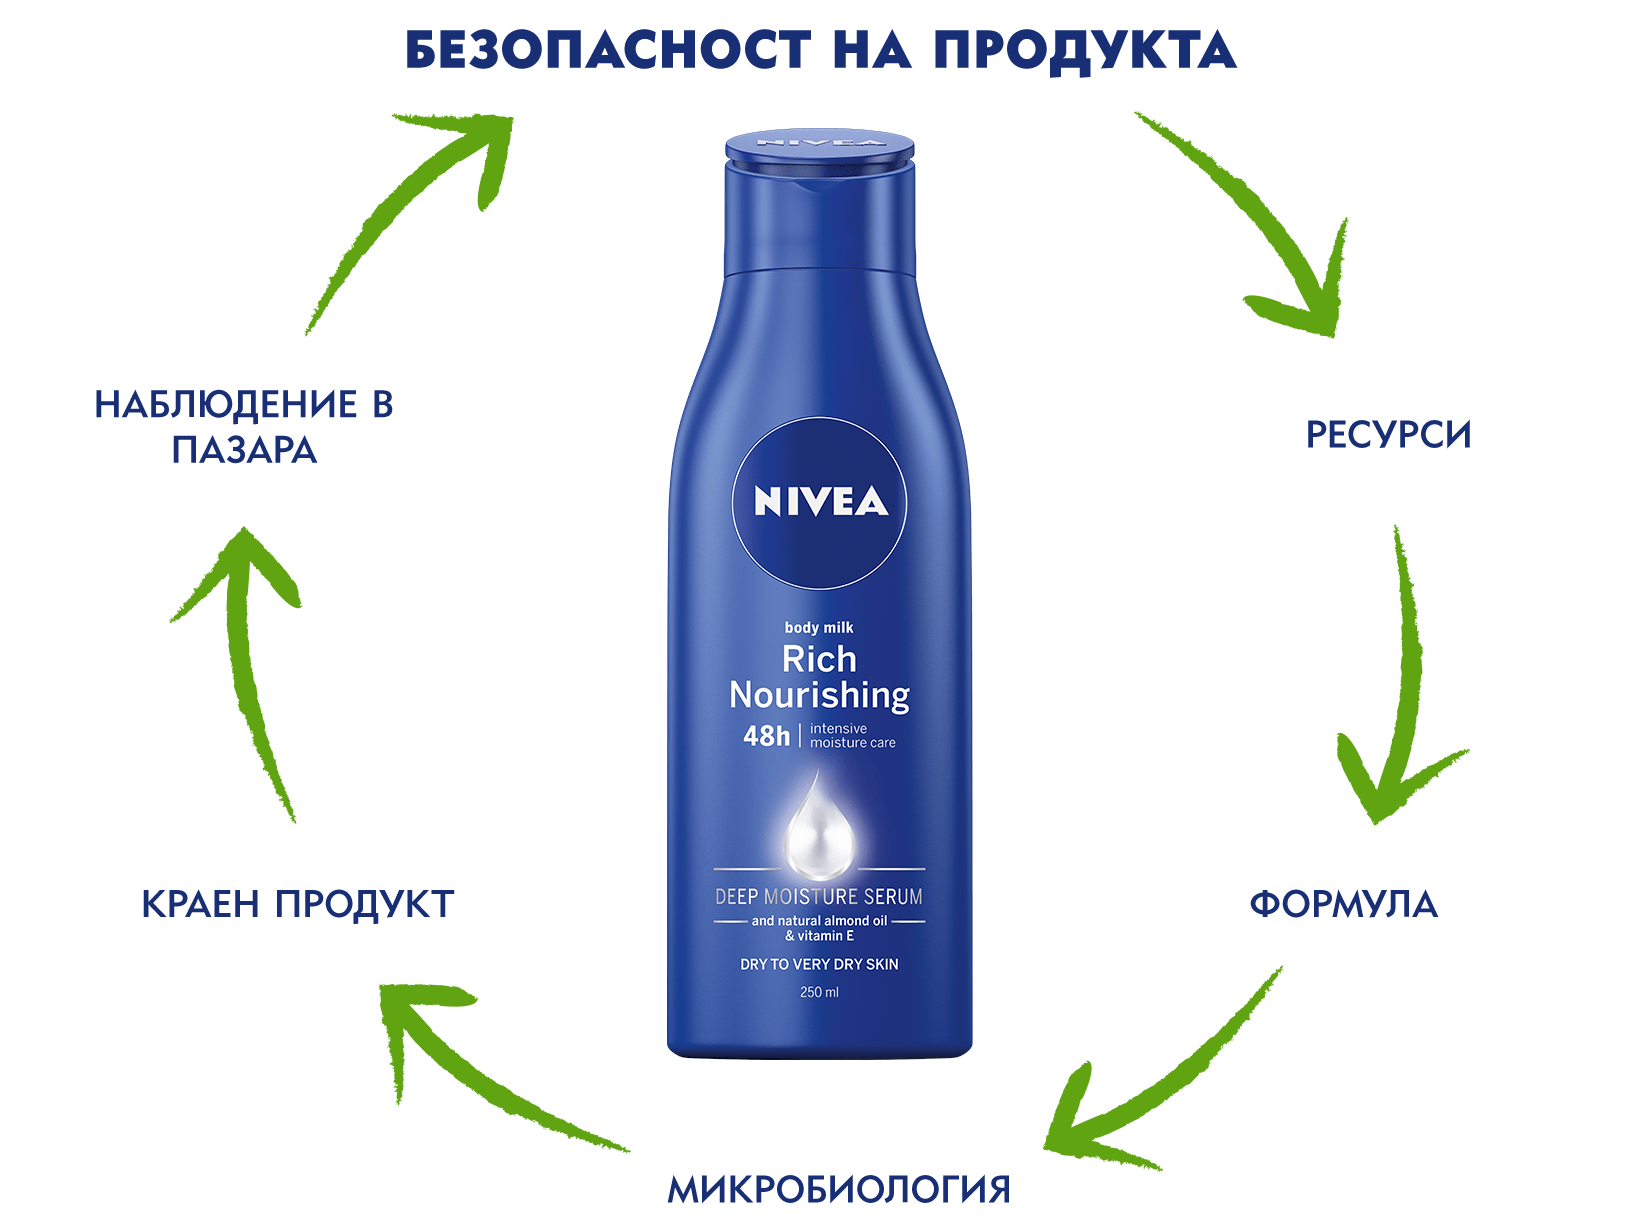 190716_Nivea_Sustainability_Infographic_01_1640x1230-update